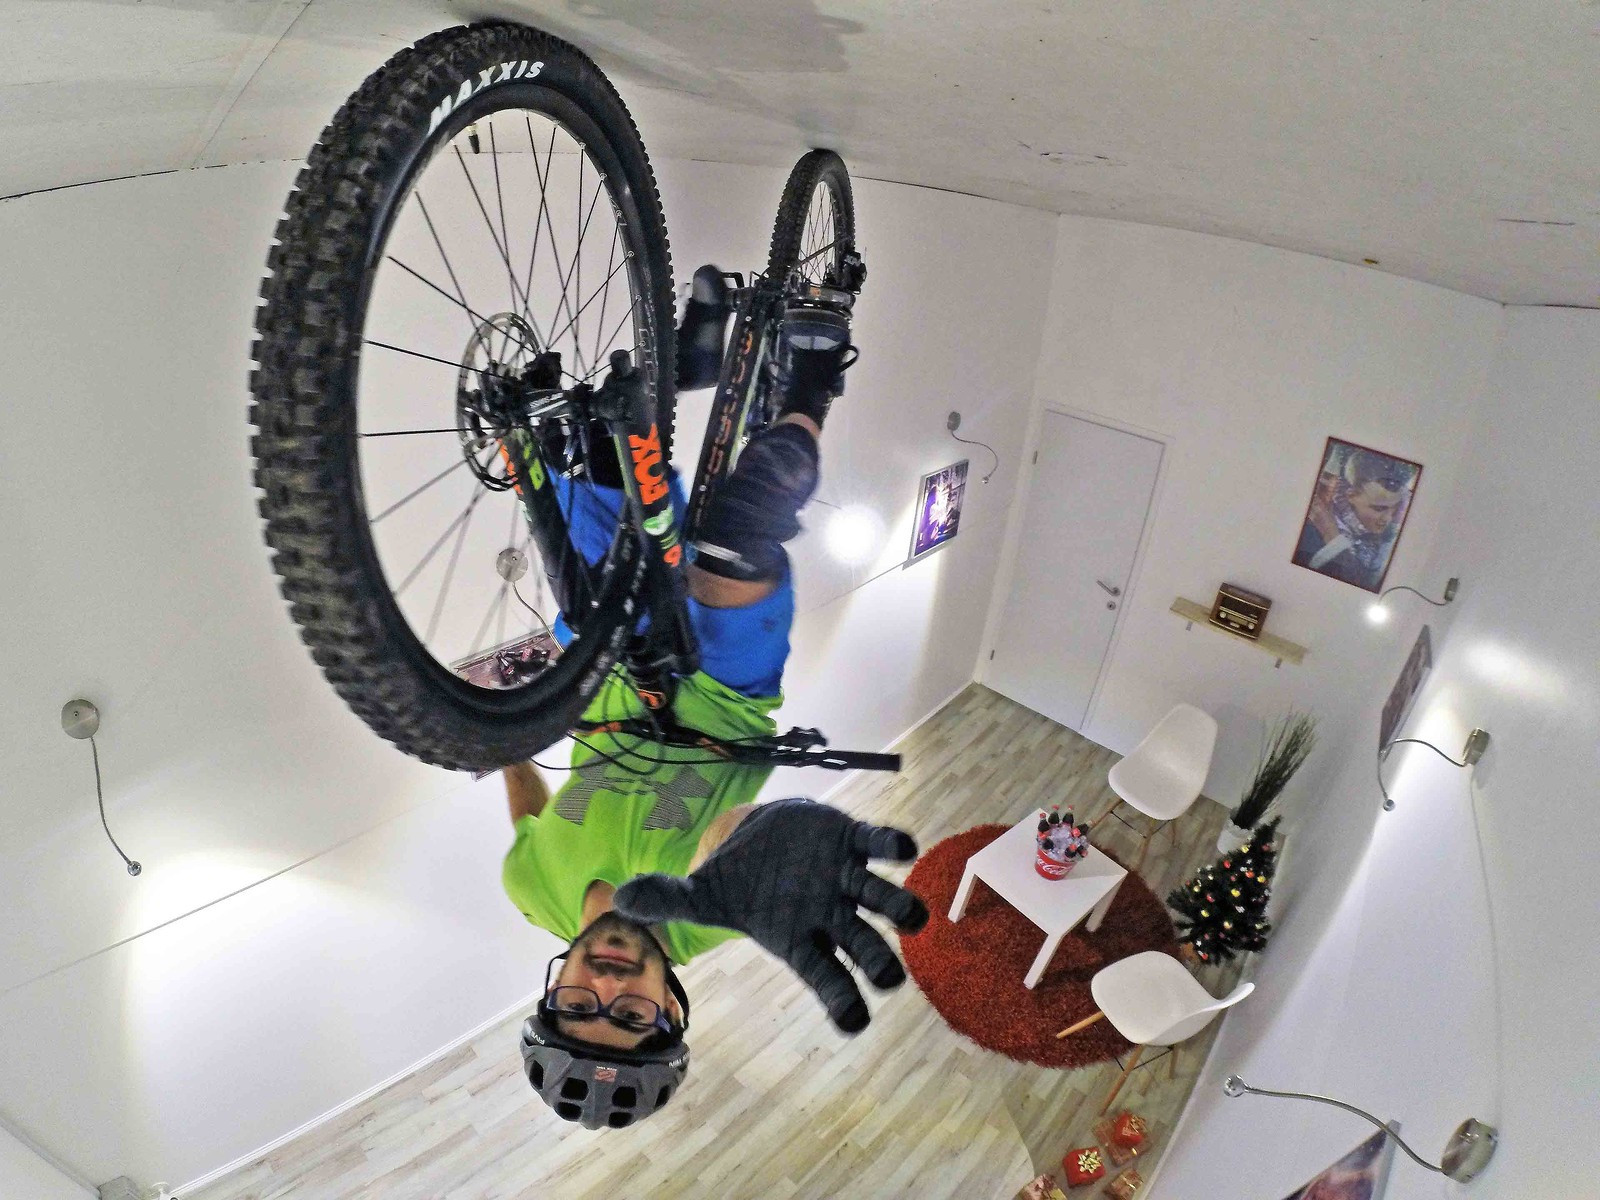 Bike illusion - porson - Mountain Biking Pictures - Vital MTB